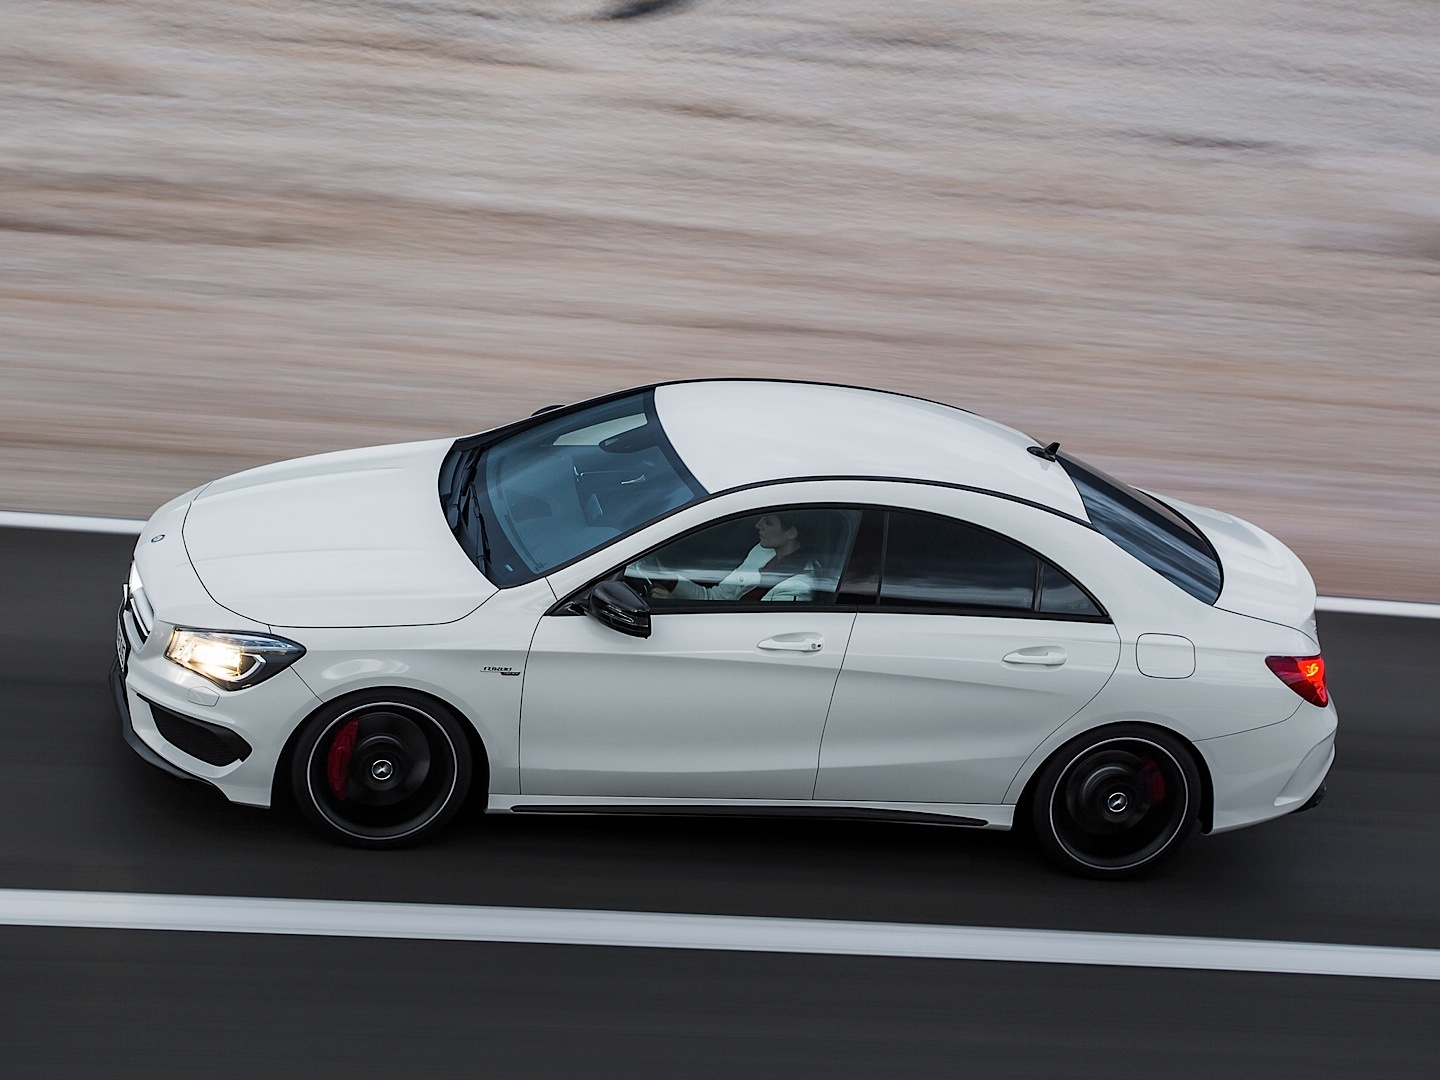 Mercedes Benz mercedes benz cla 45 amg : Mercedes-Benz CLA 45 AMG Gets EPA Rated - autoevolution